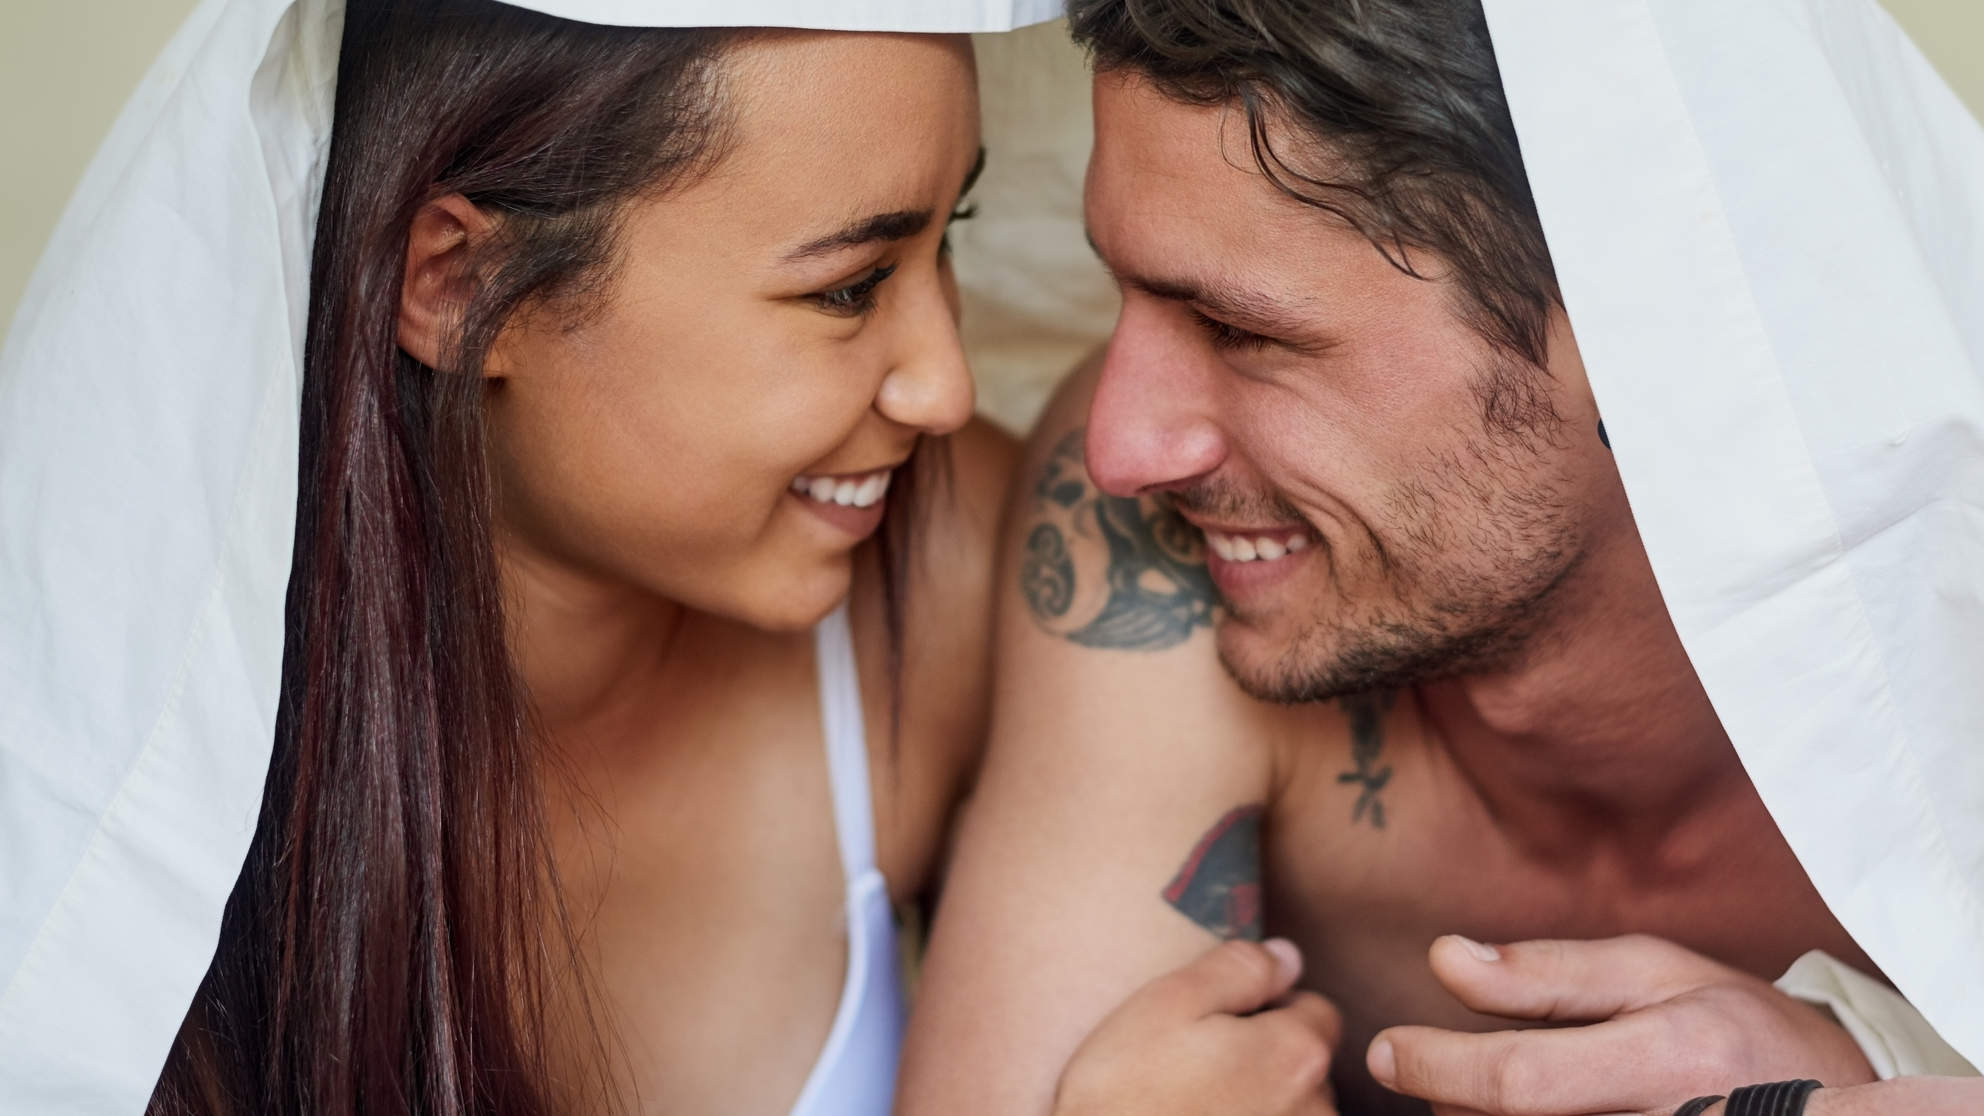 This Couple Is Embarking on a 30-Day Sex Challenge. Here's What That Means